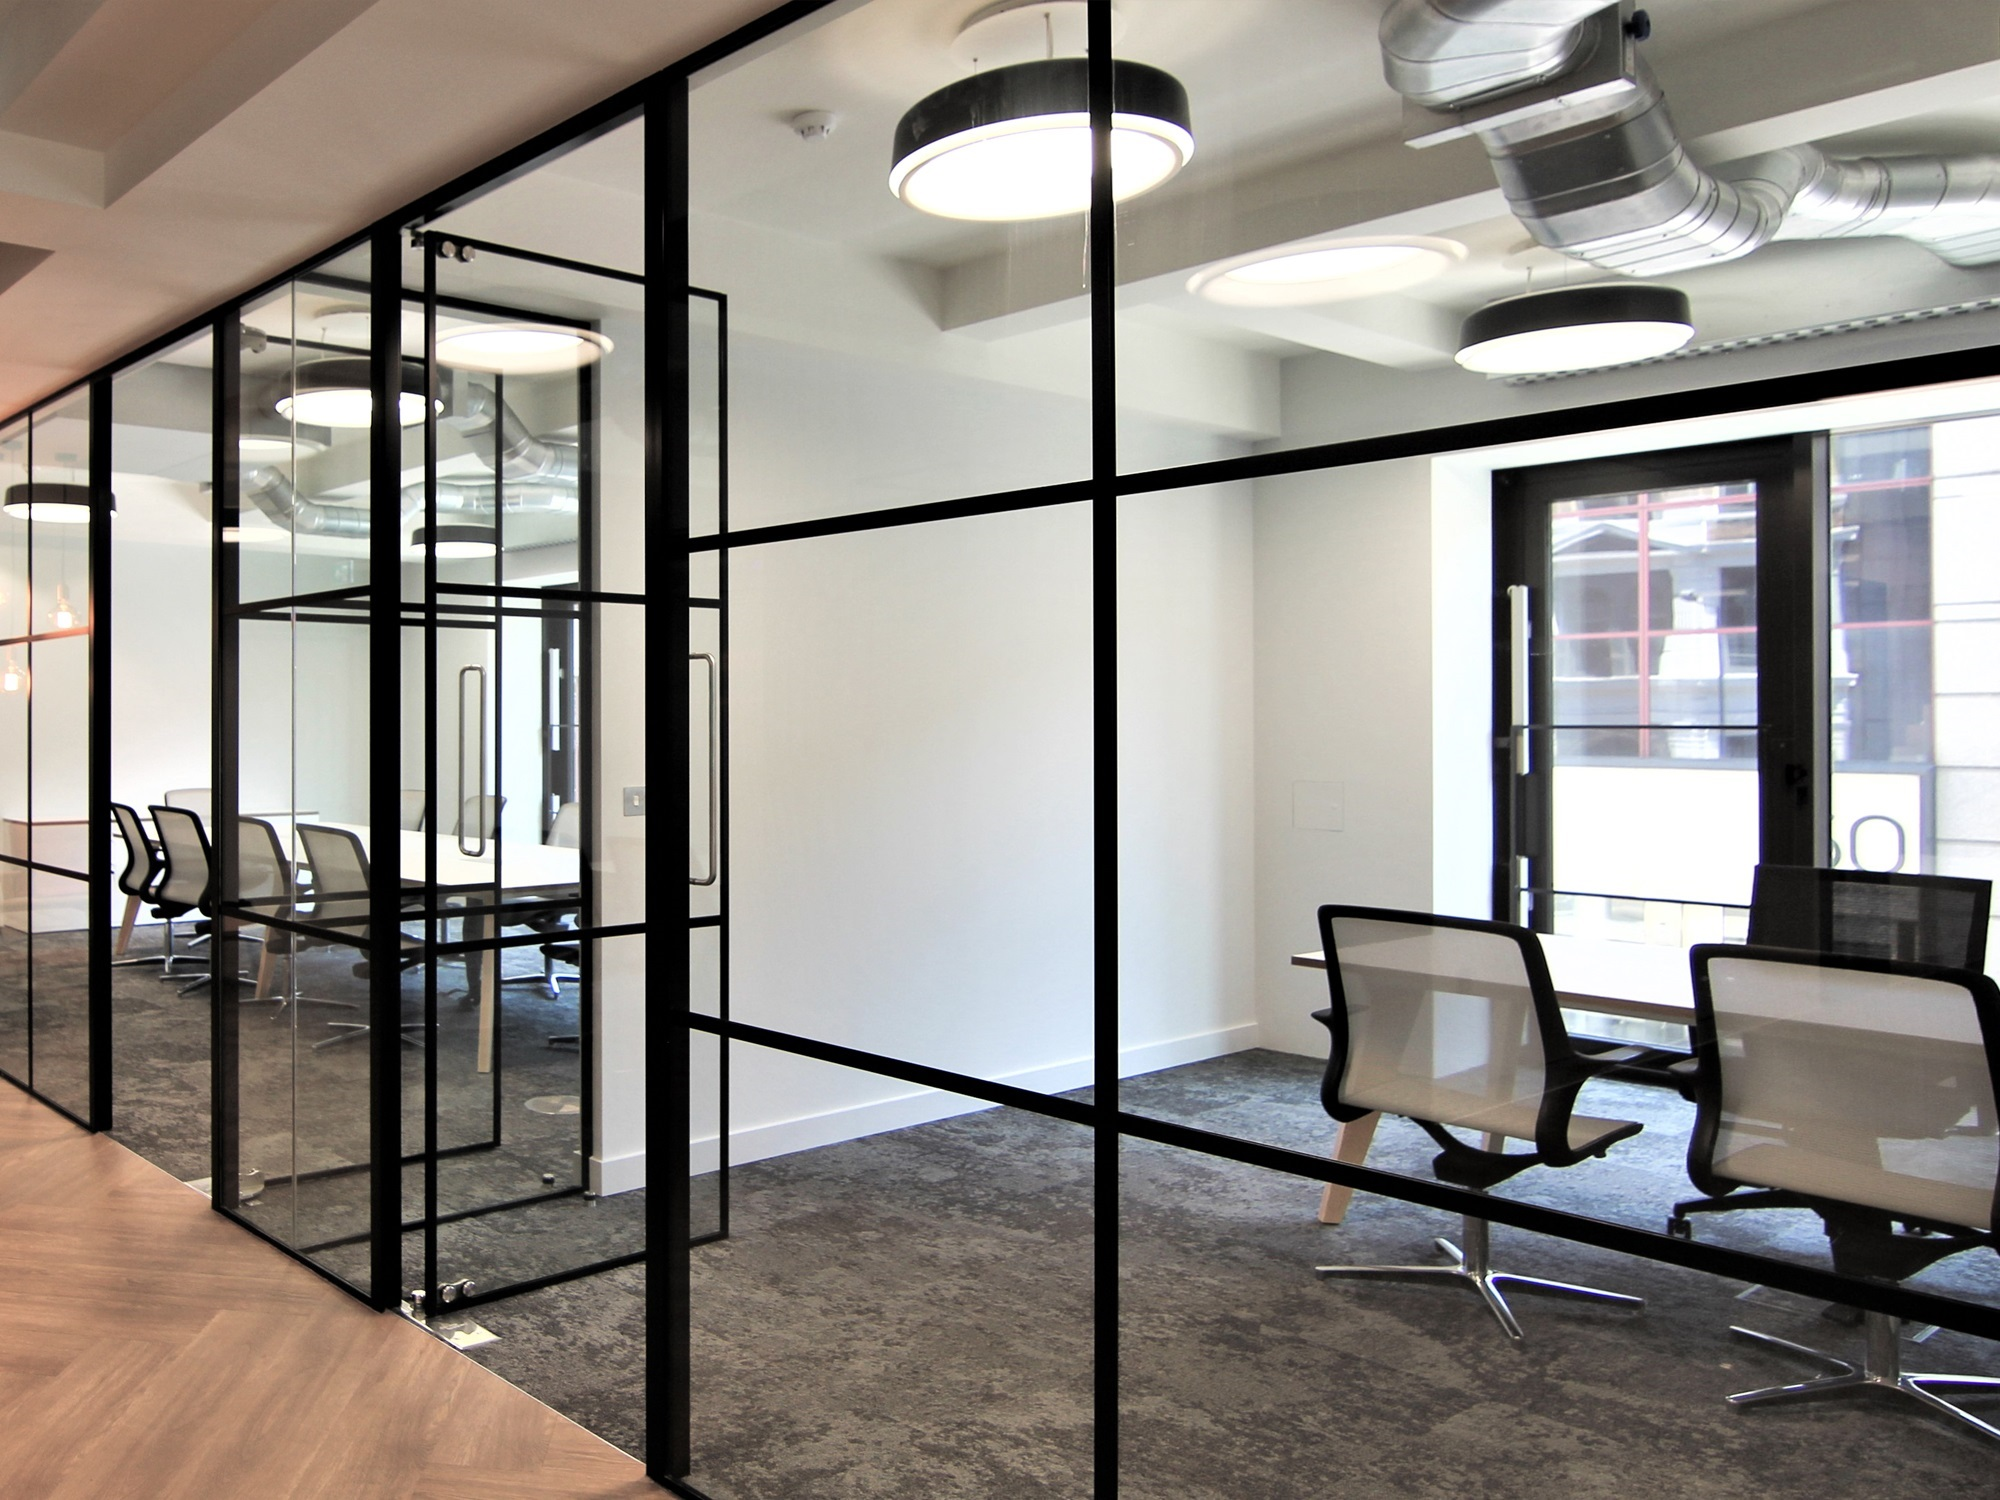 office space divided by glass walls